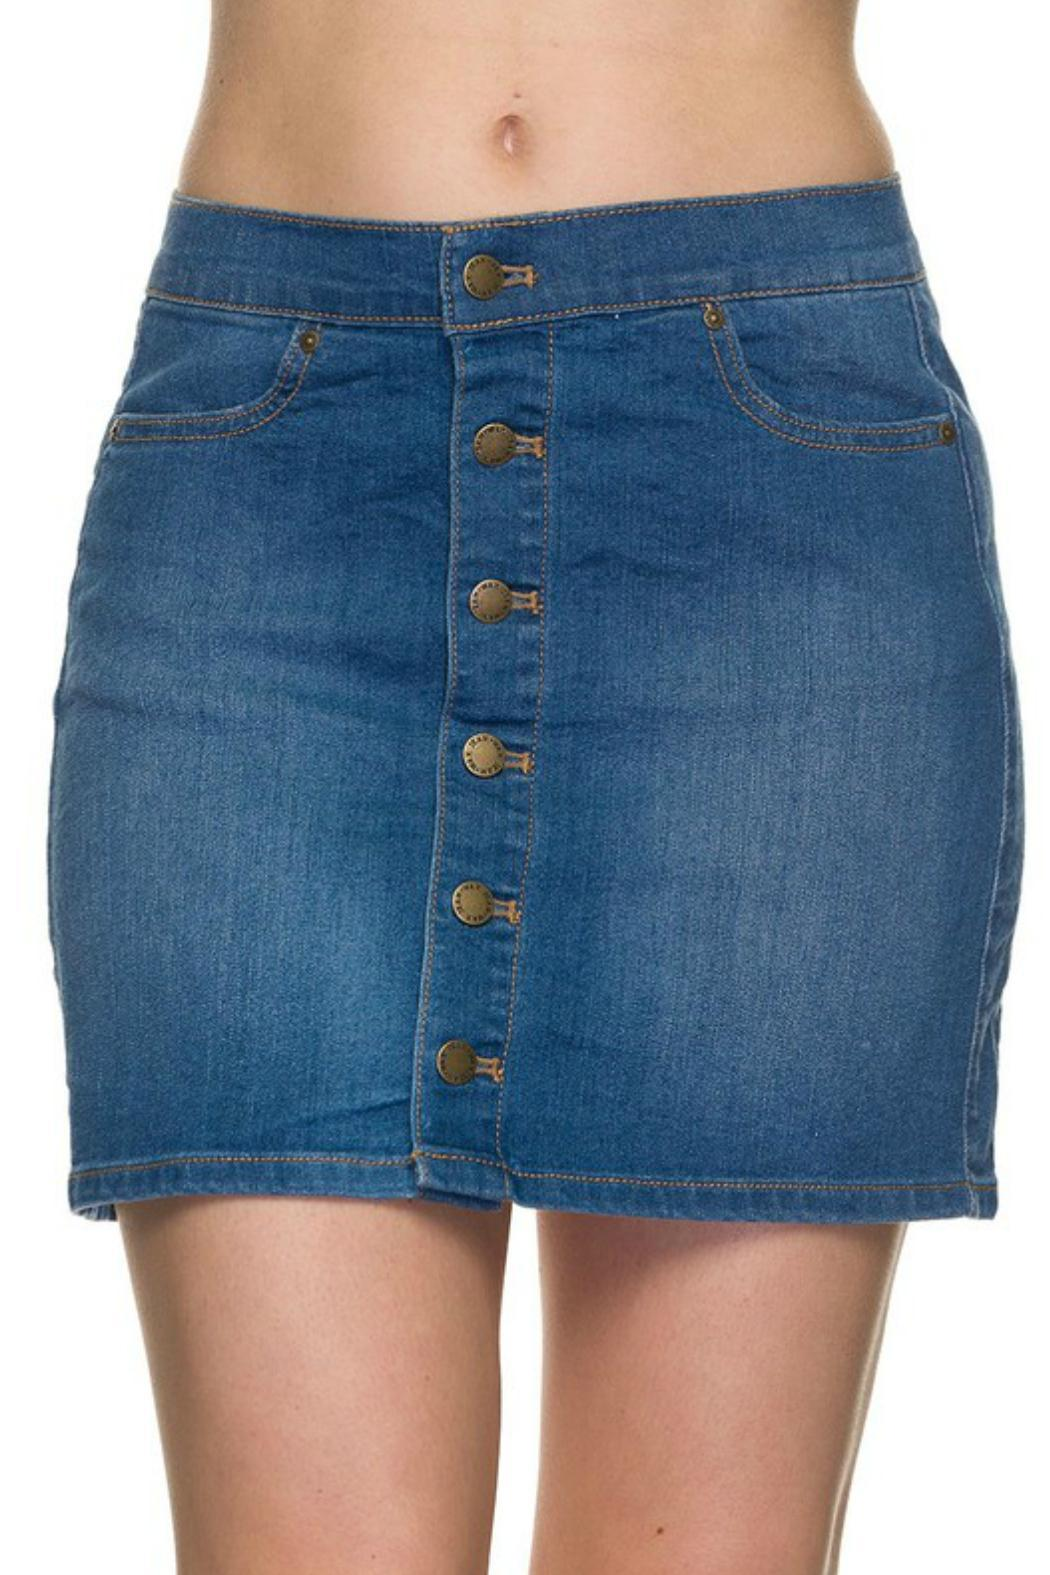 Wax Jean Basic Button Denim Skirt from Fayetteville by Gatsbyu0026#39;s Boutique u2014 Shoptiques